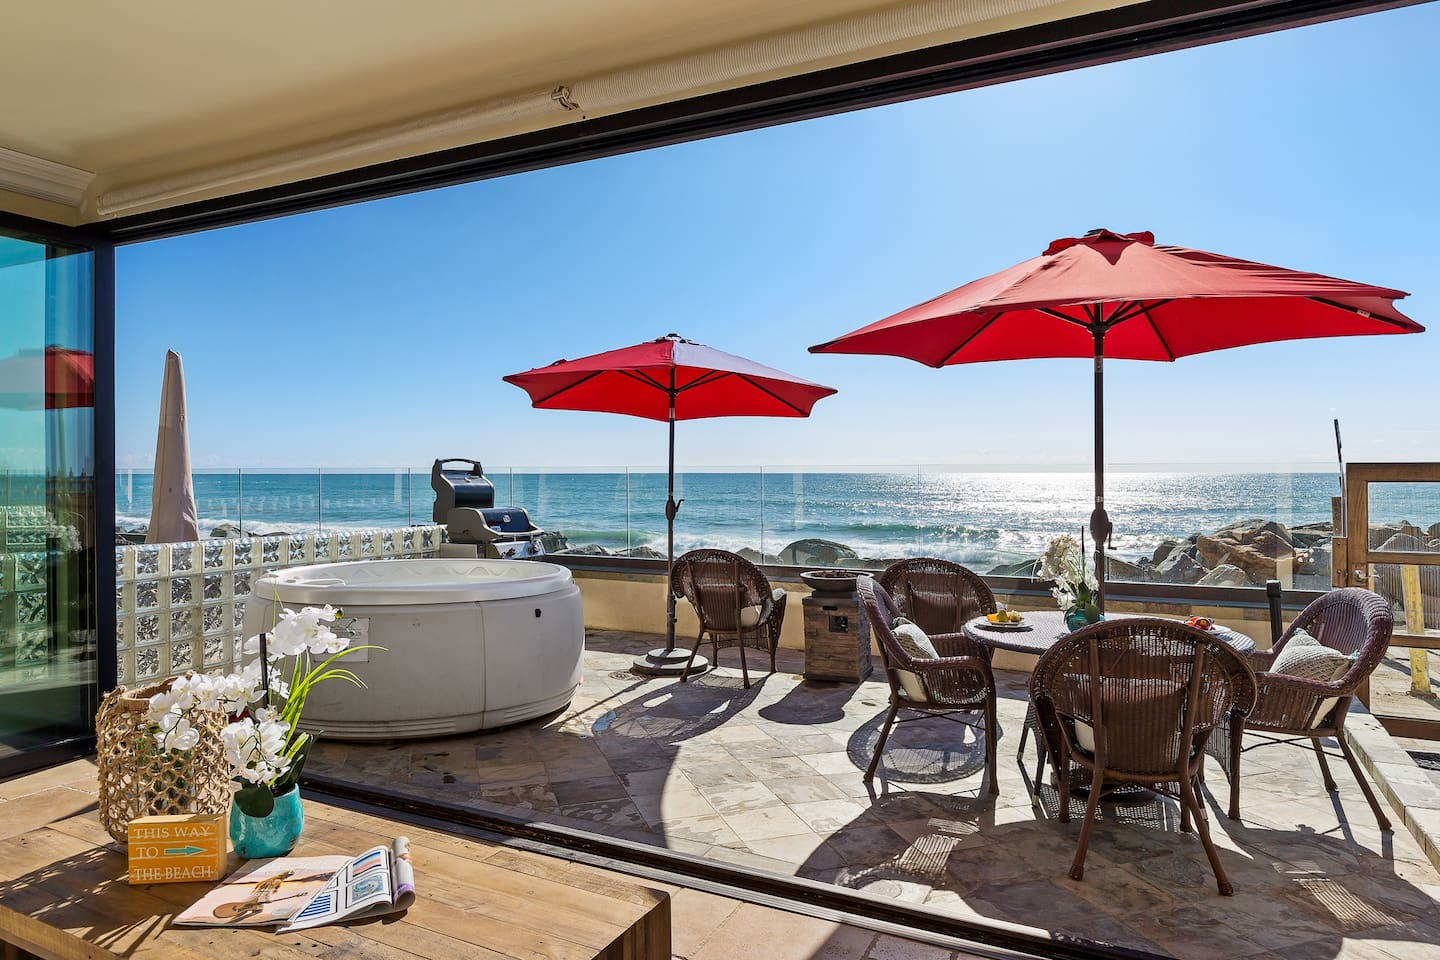 Panoramic Doors, Spa, Patio, and the Ocean Out Front